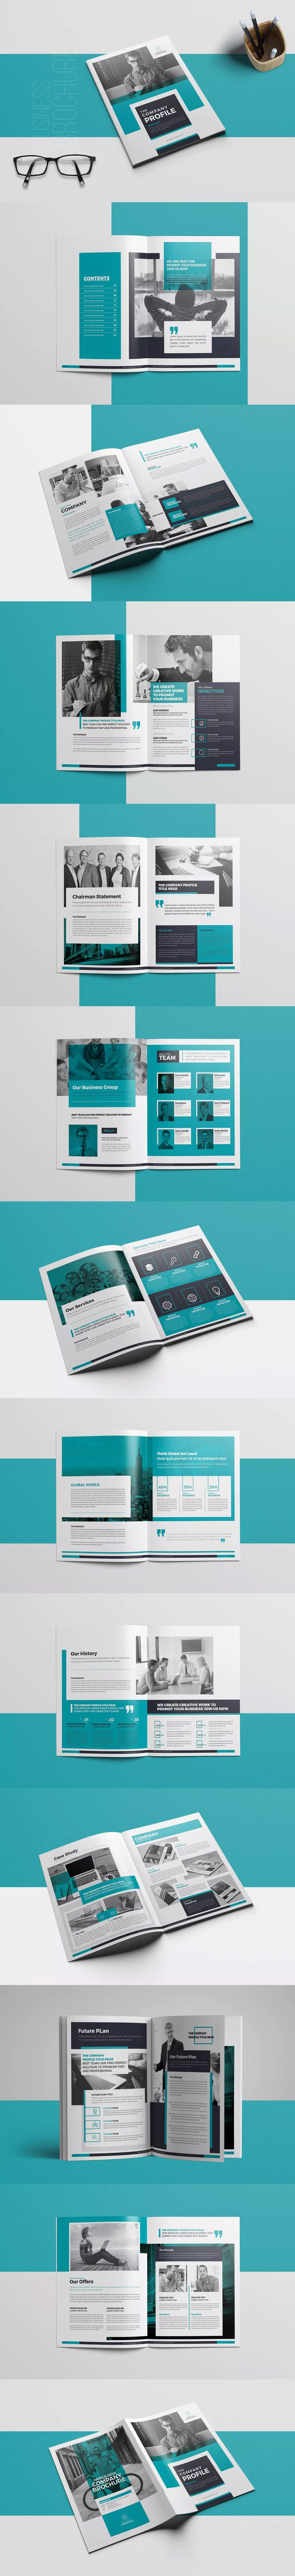 Company Profile Template InDesign INDD - A4 & US Letter Size